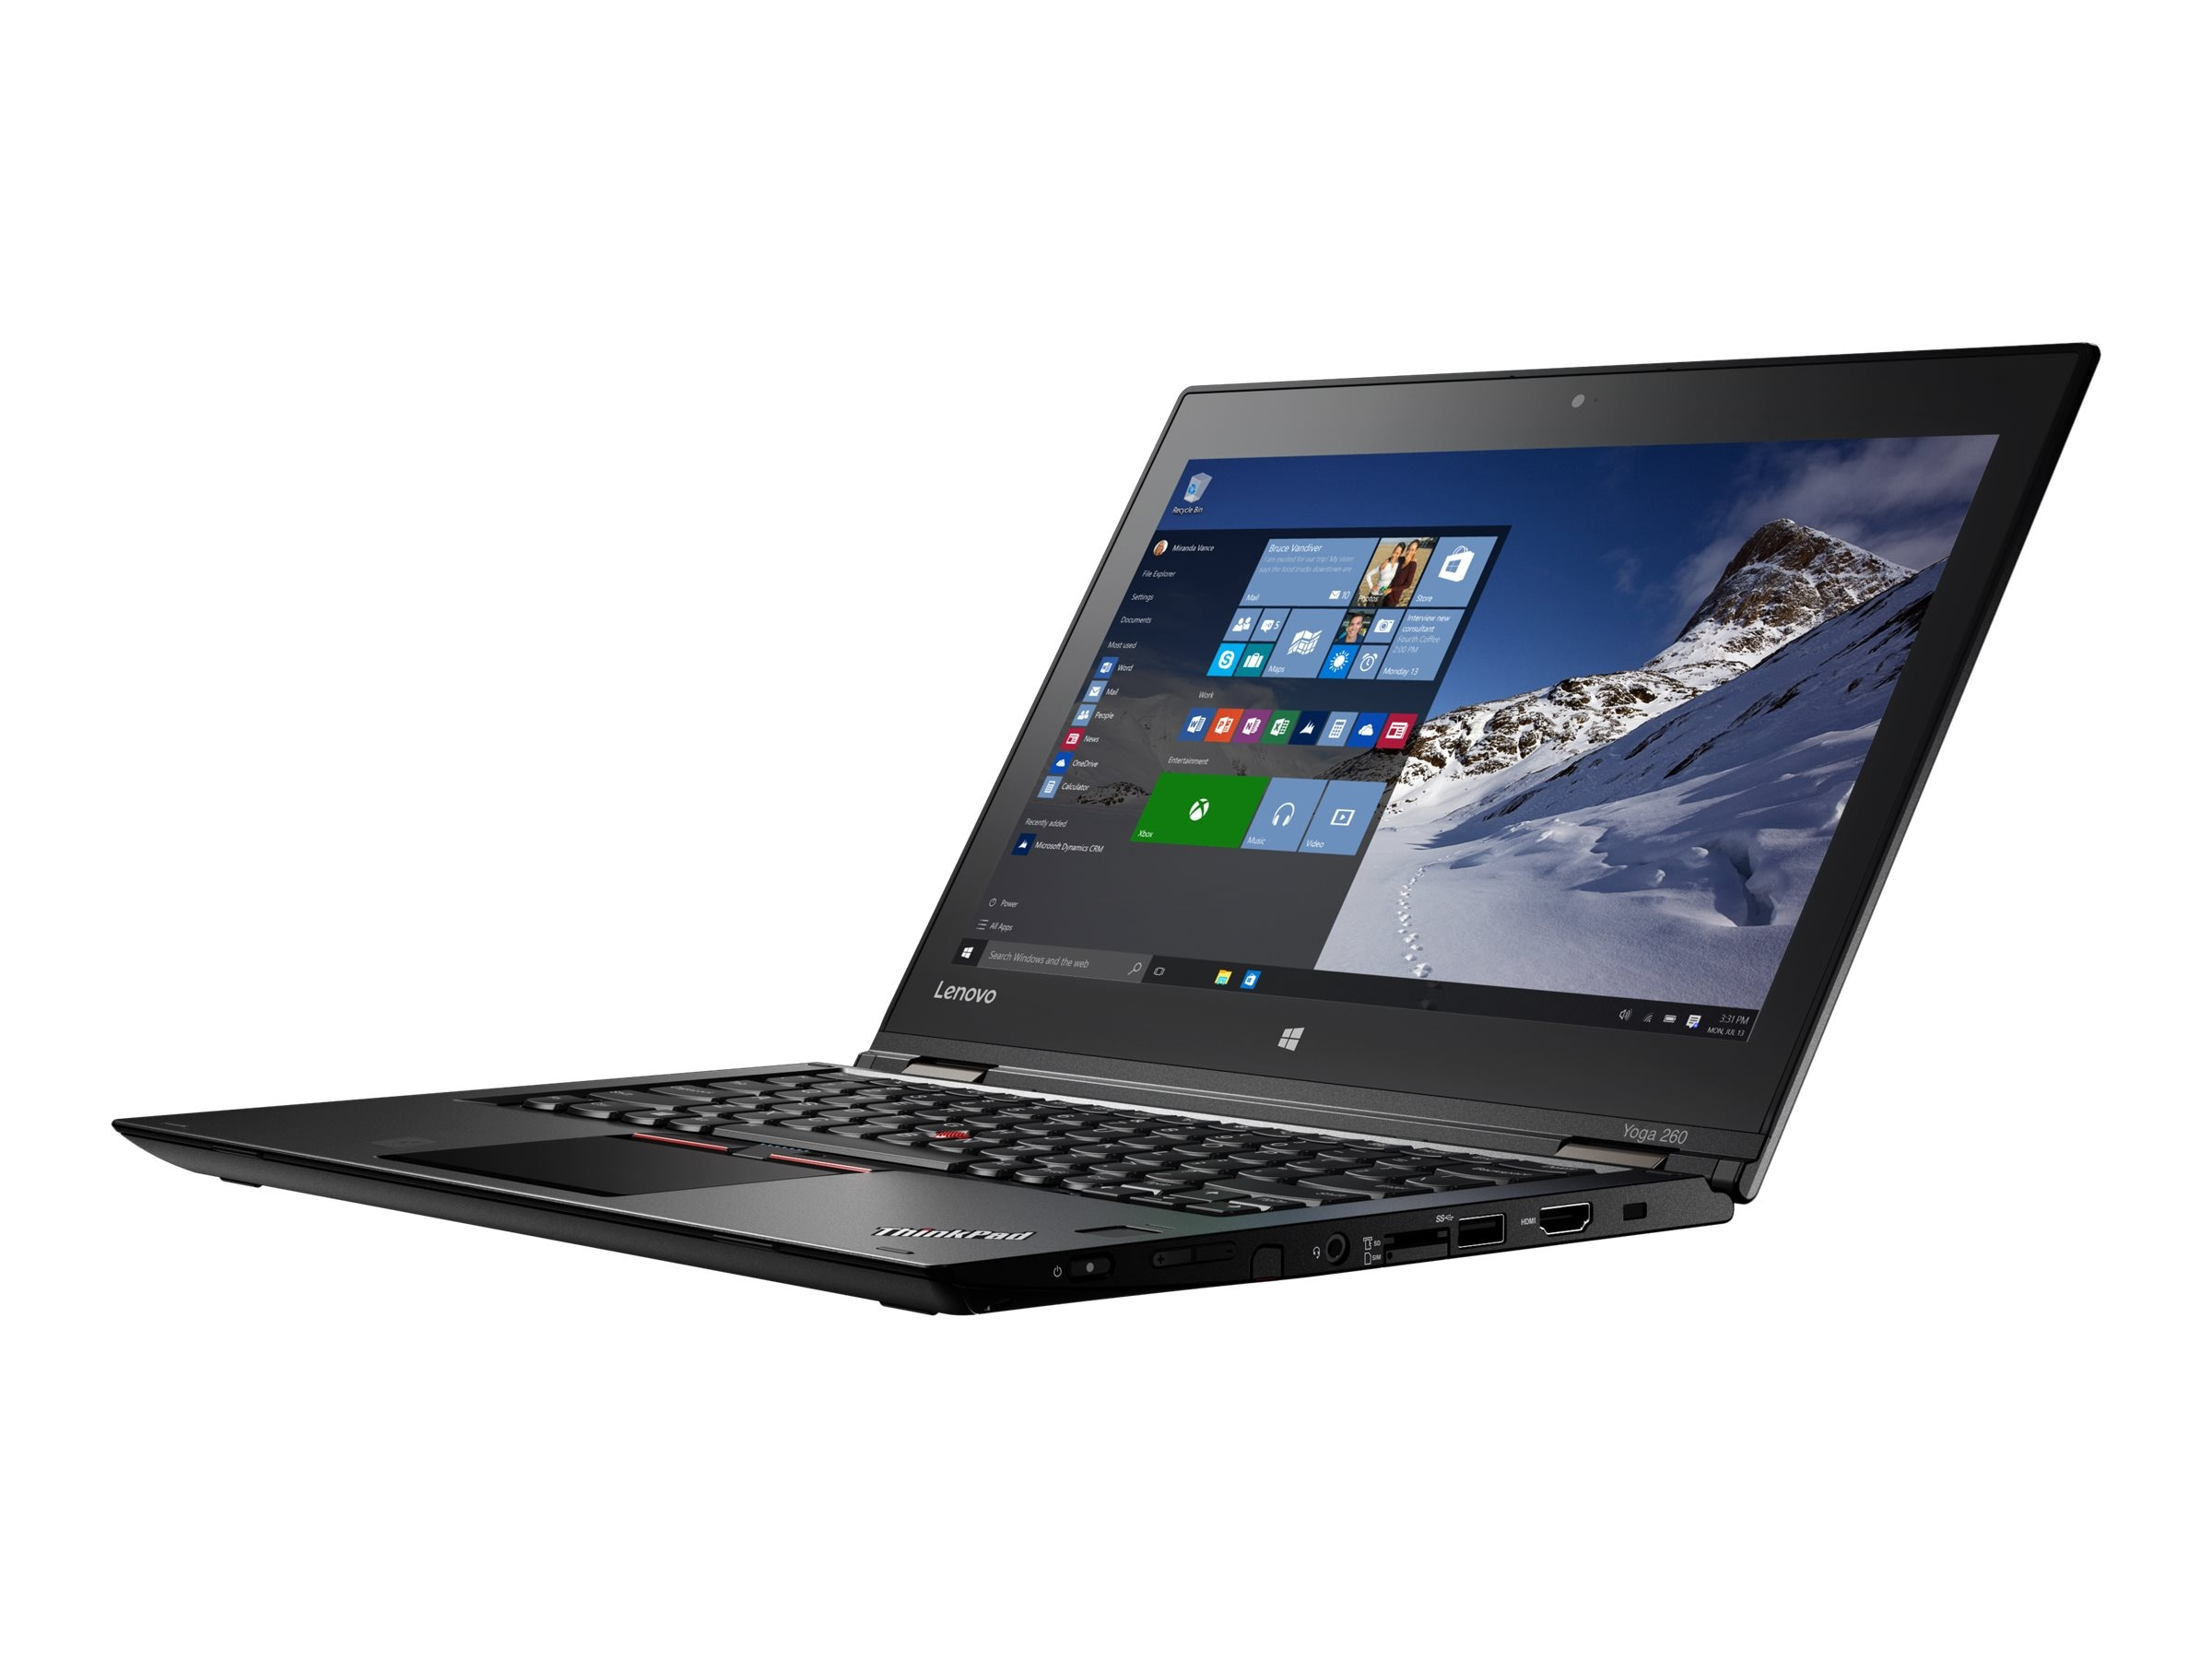 Lenovo TopSeller ThinkPad Yoga 260 Core i7-6600U 2.6GHz 8GB 256GB OPAL2 ac BT WC Pen 4C 12.5 FHD MT W10P64